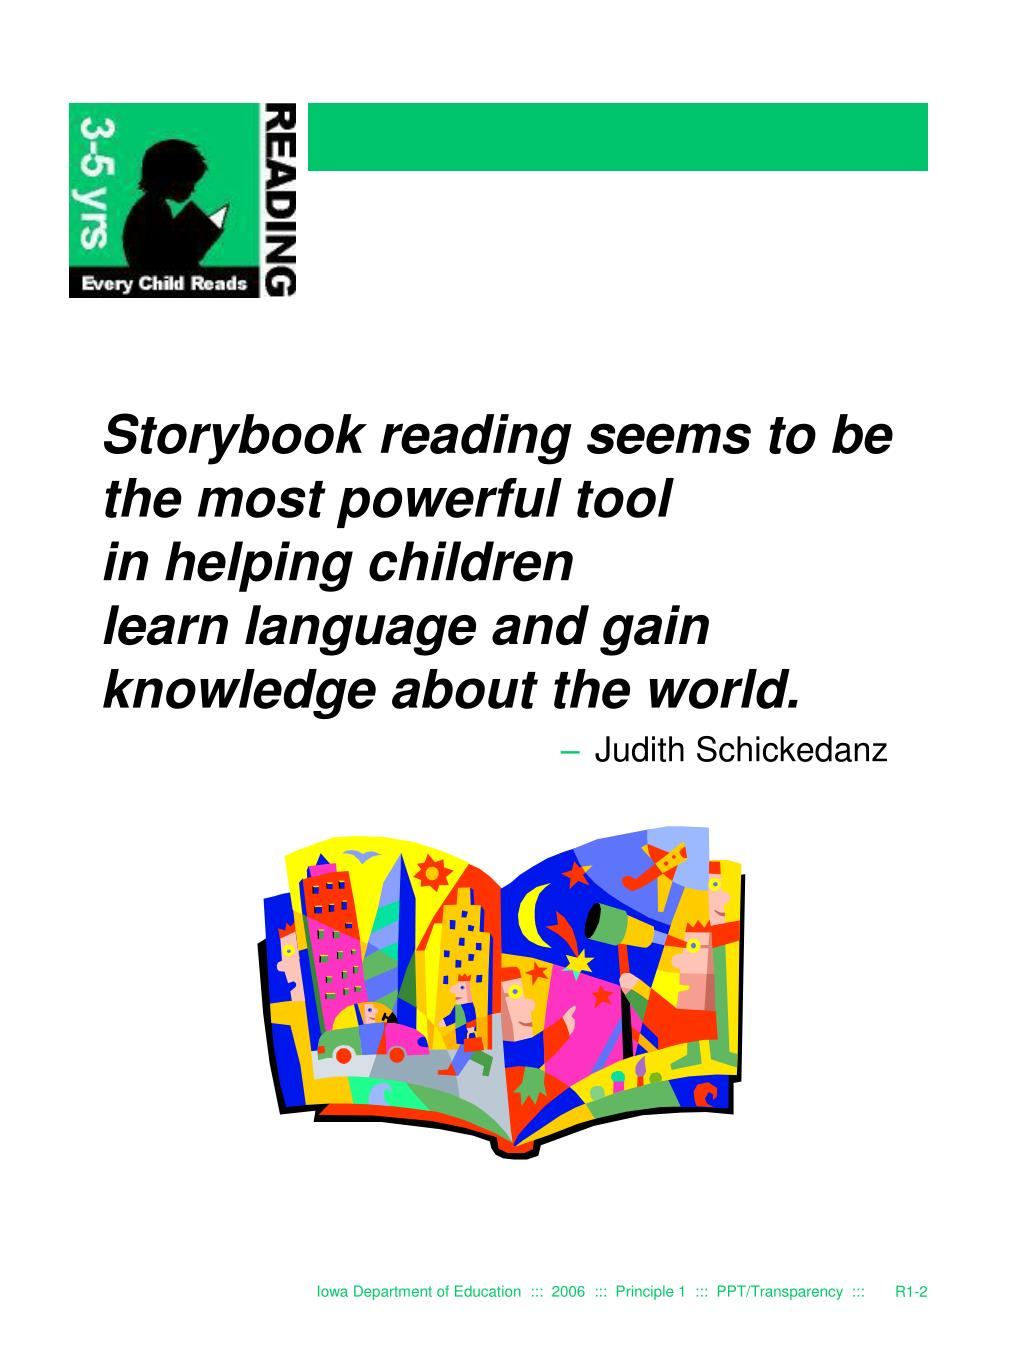 Storybook reading seems to be the most powerful tool